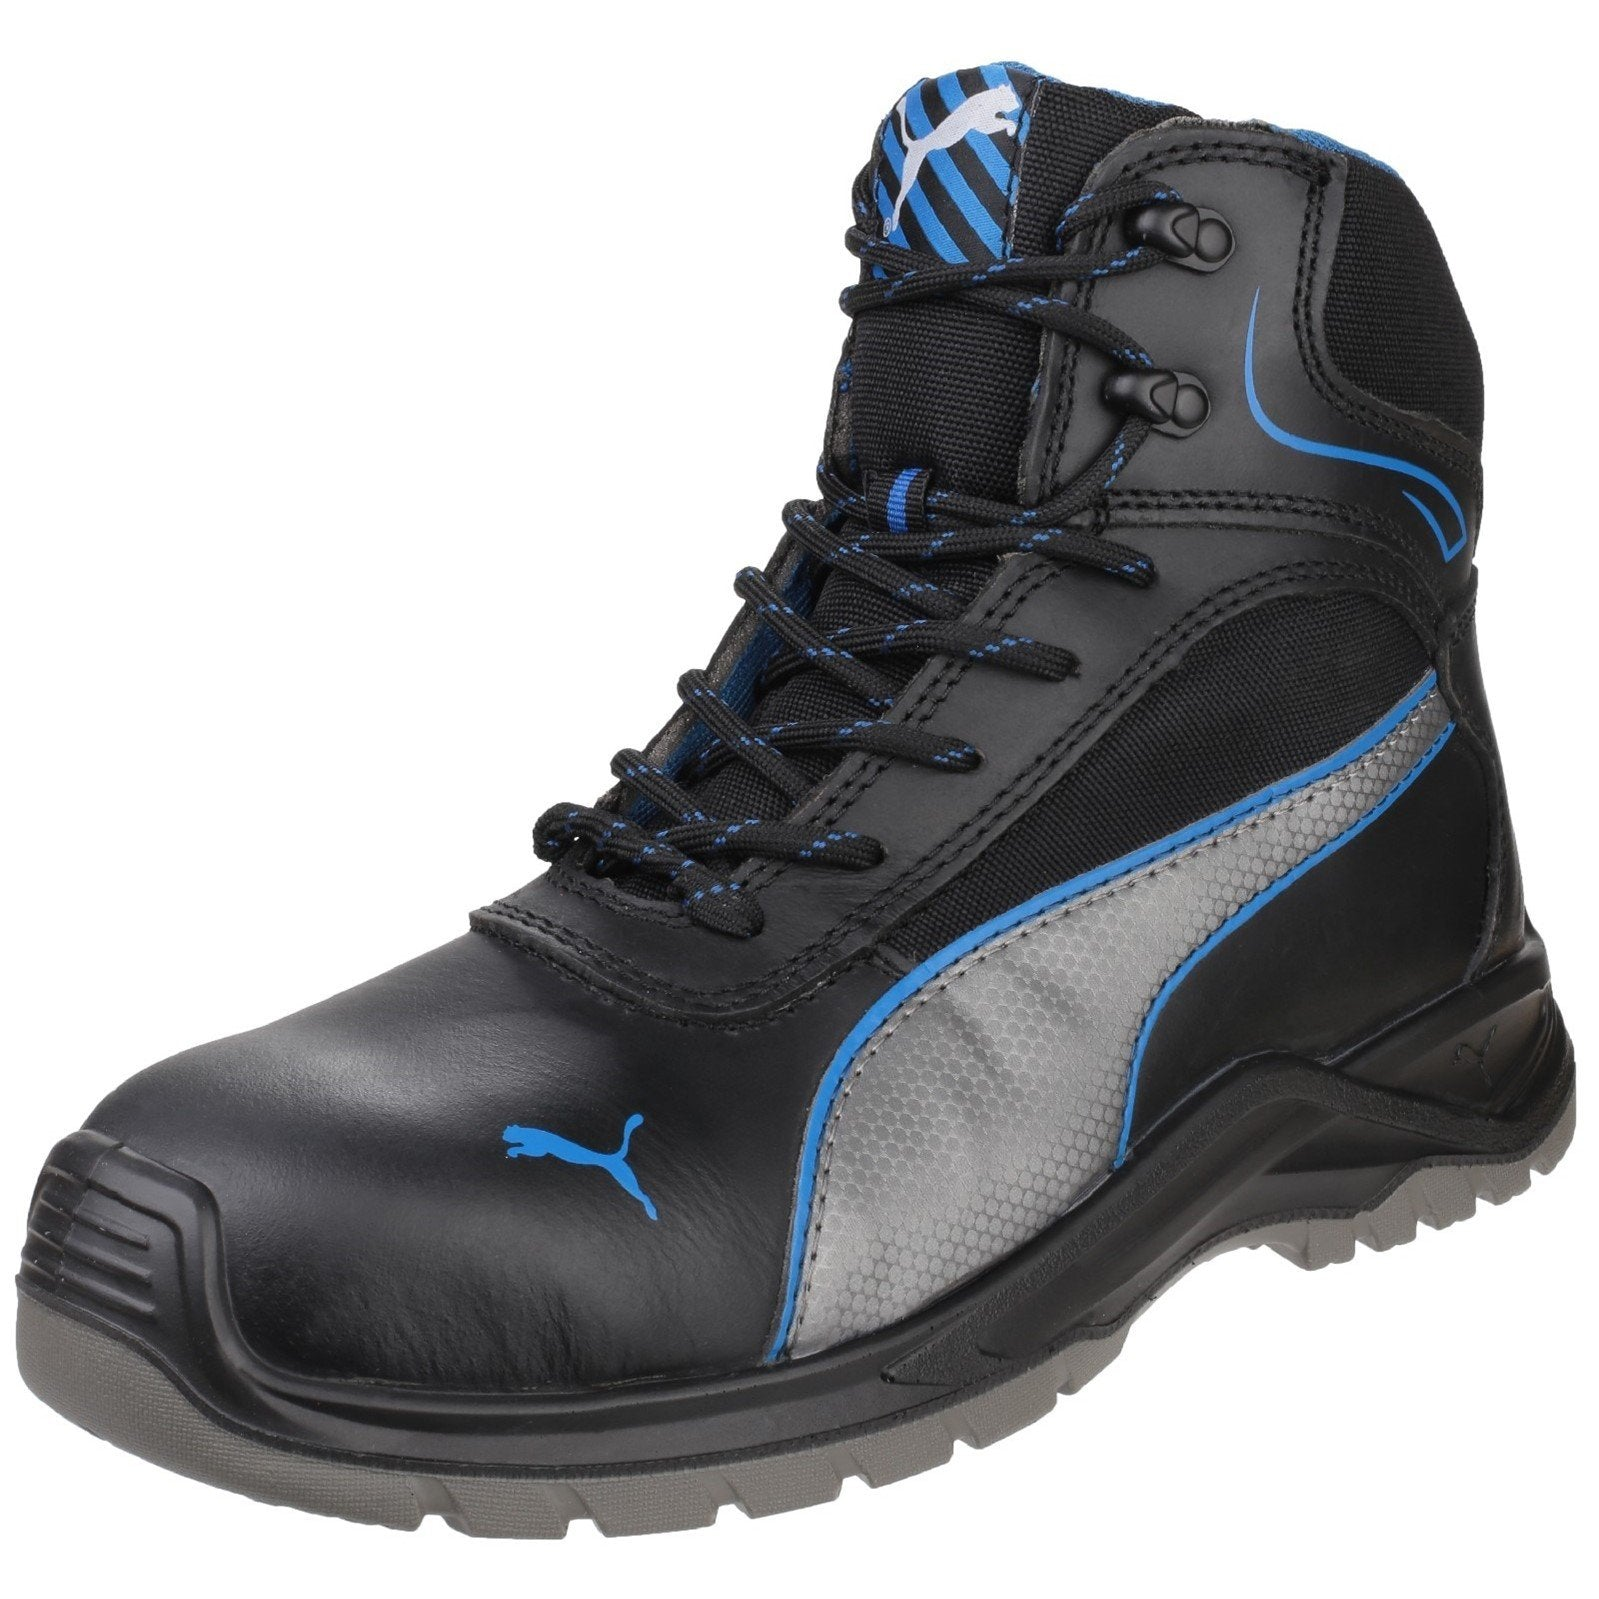 Puma Safety Atomic Mid Boots